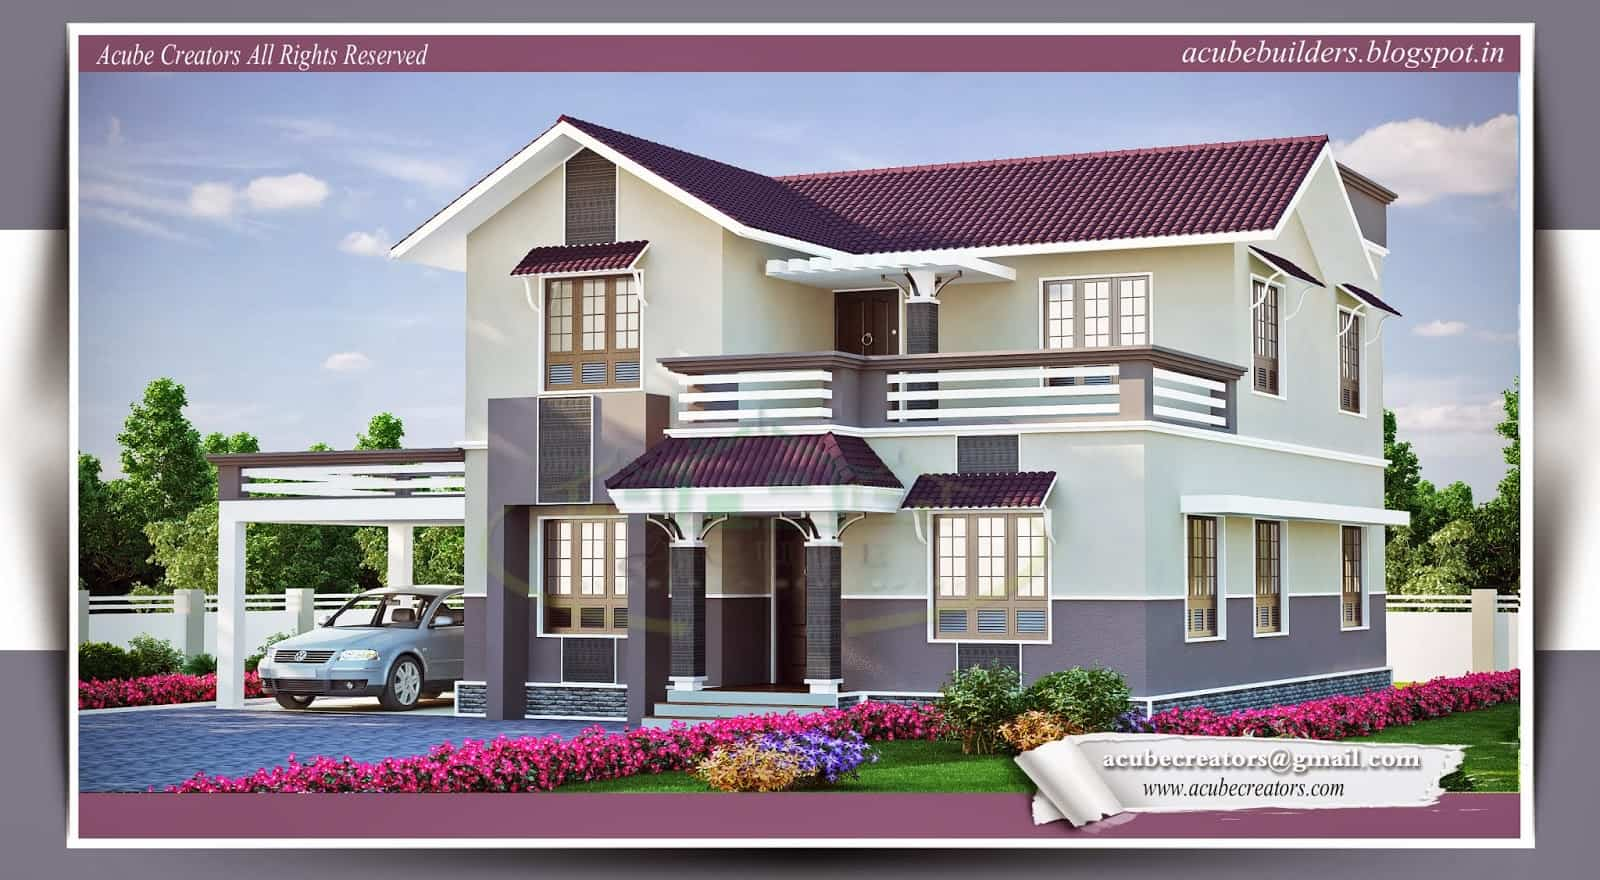 Home Plans And Designs Of Kerala House Plans With Estimate For A 2900 Home Design